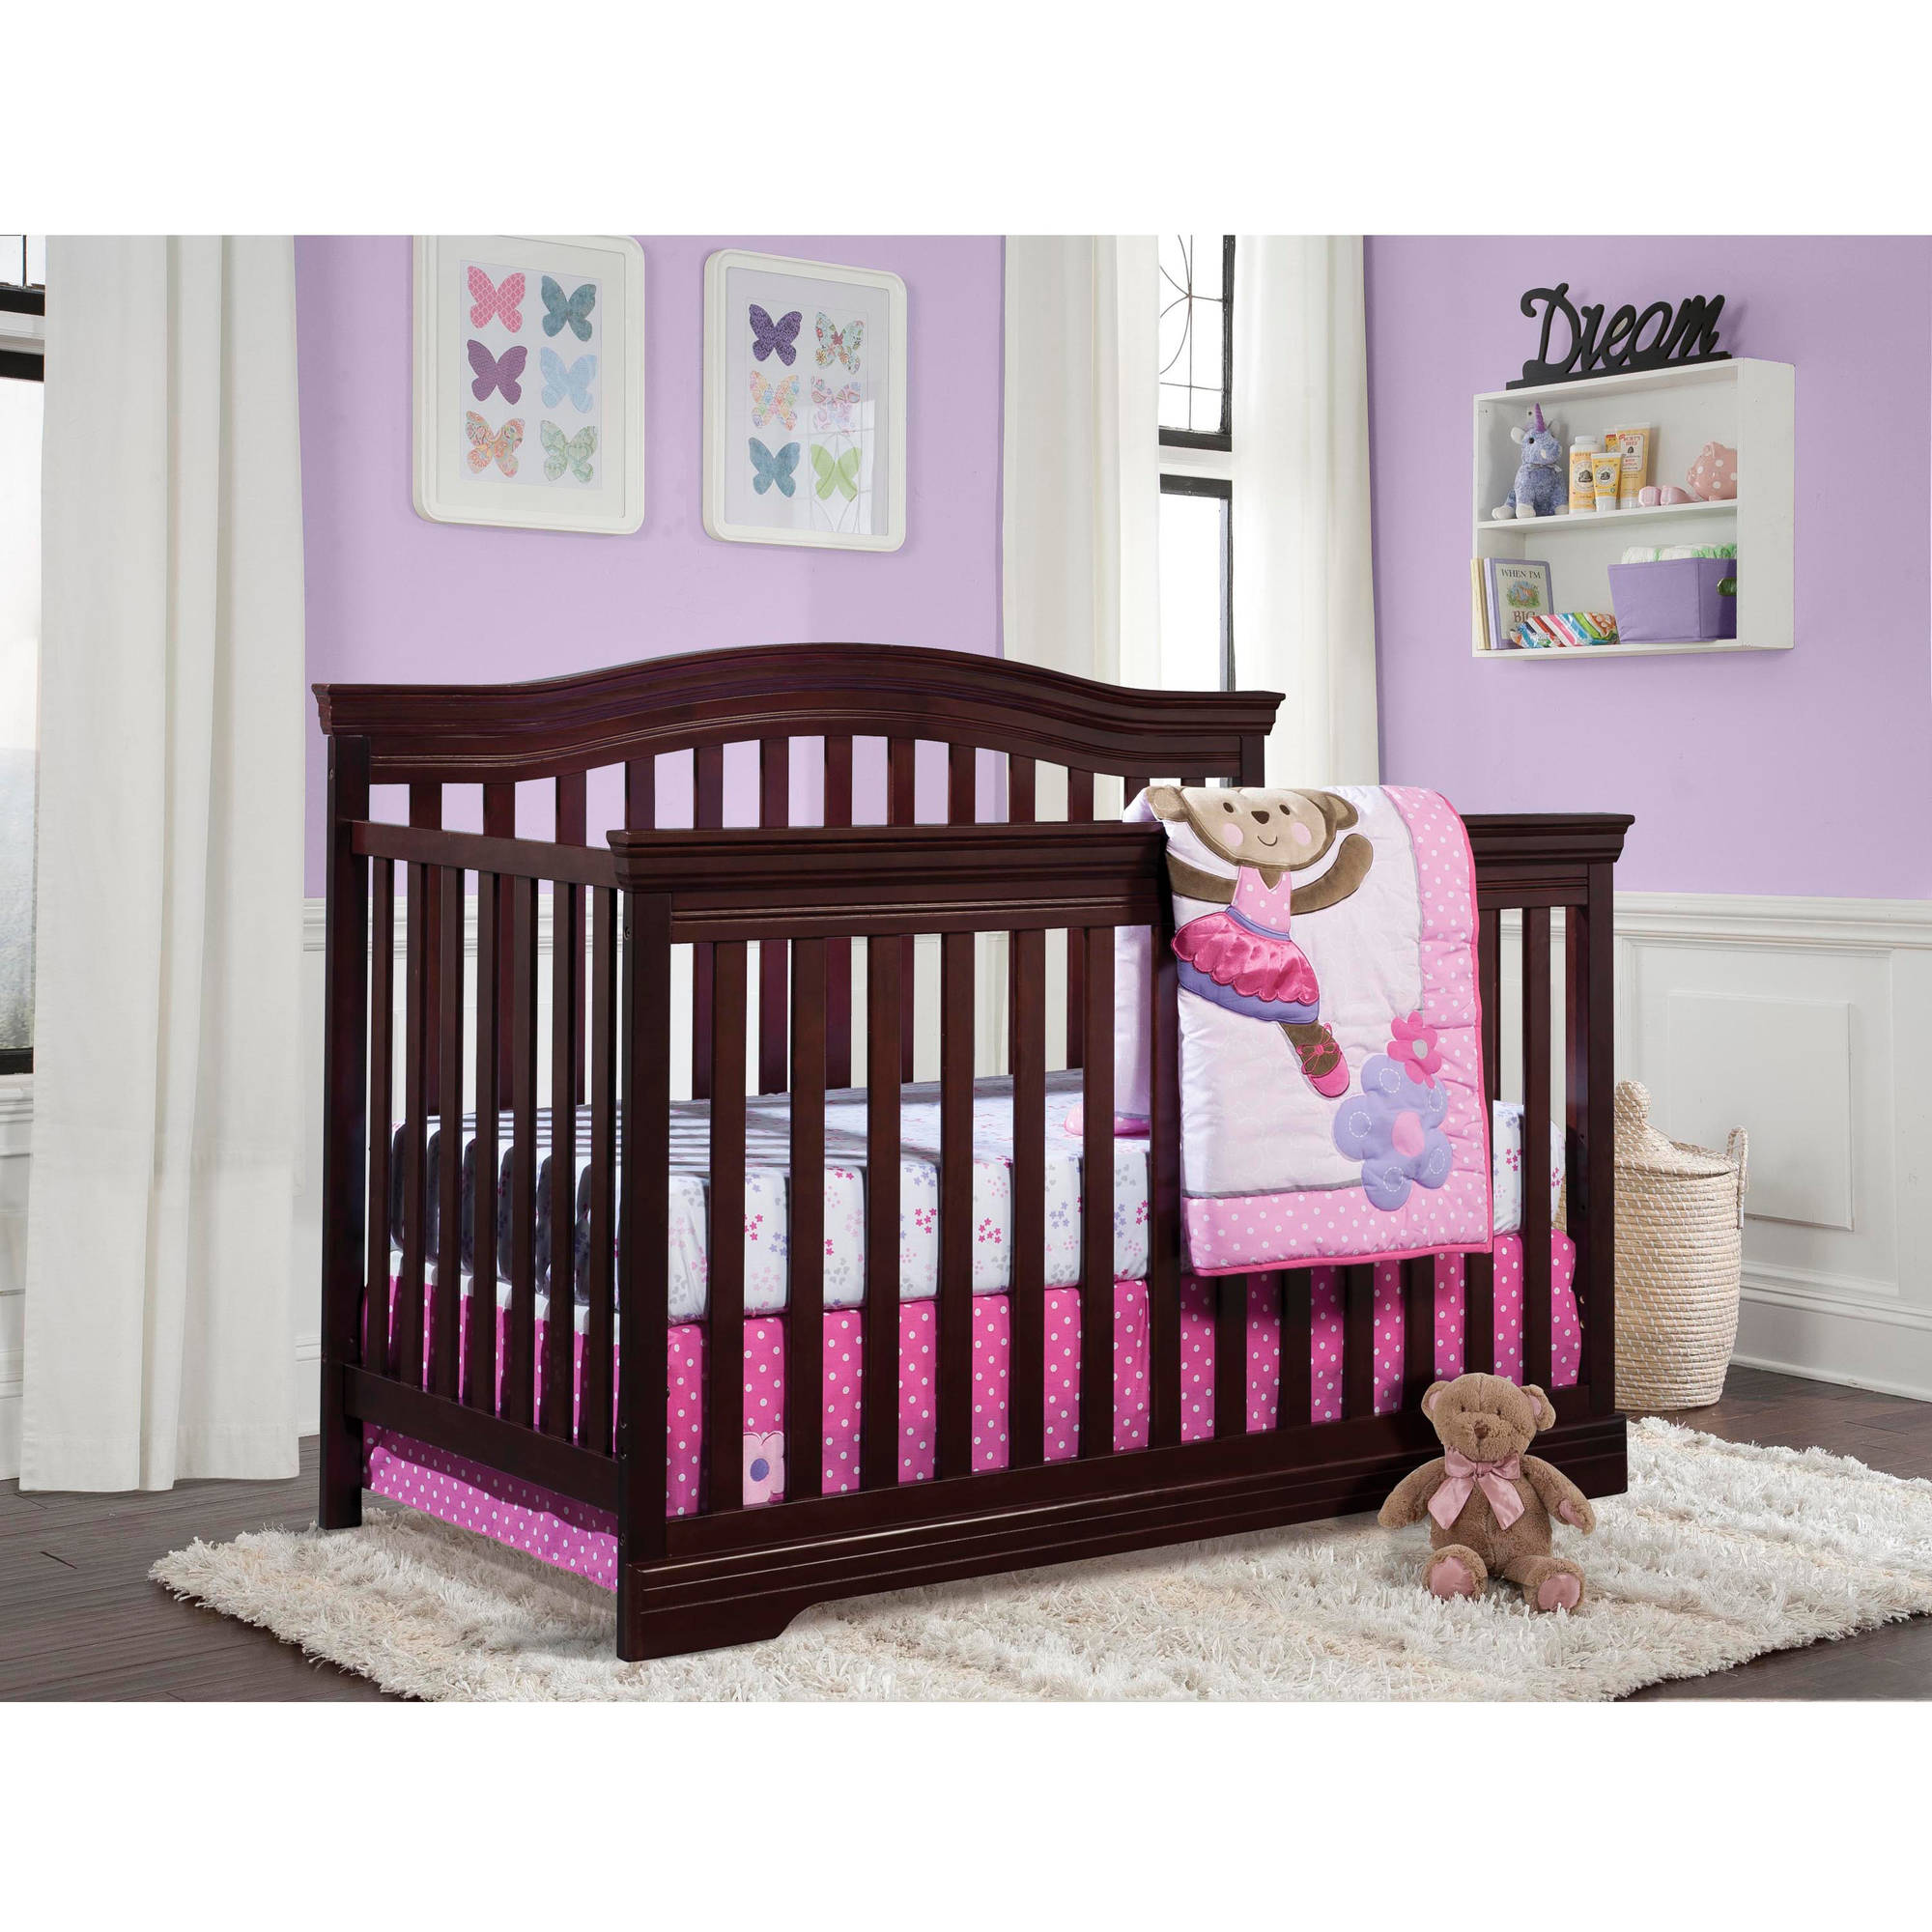 Broyhill Kids Bowen Heights 4-in-1 Convertible Crib, Choose Your Finish